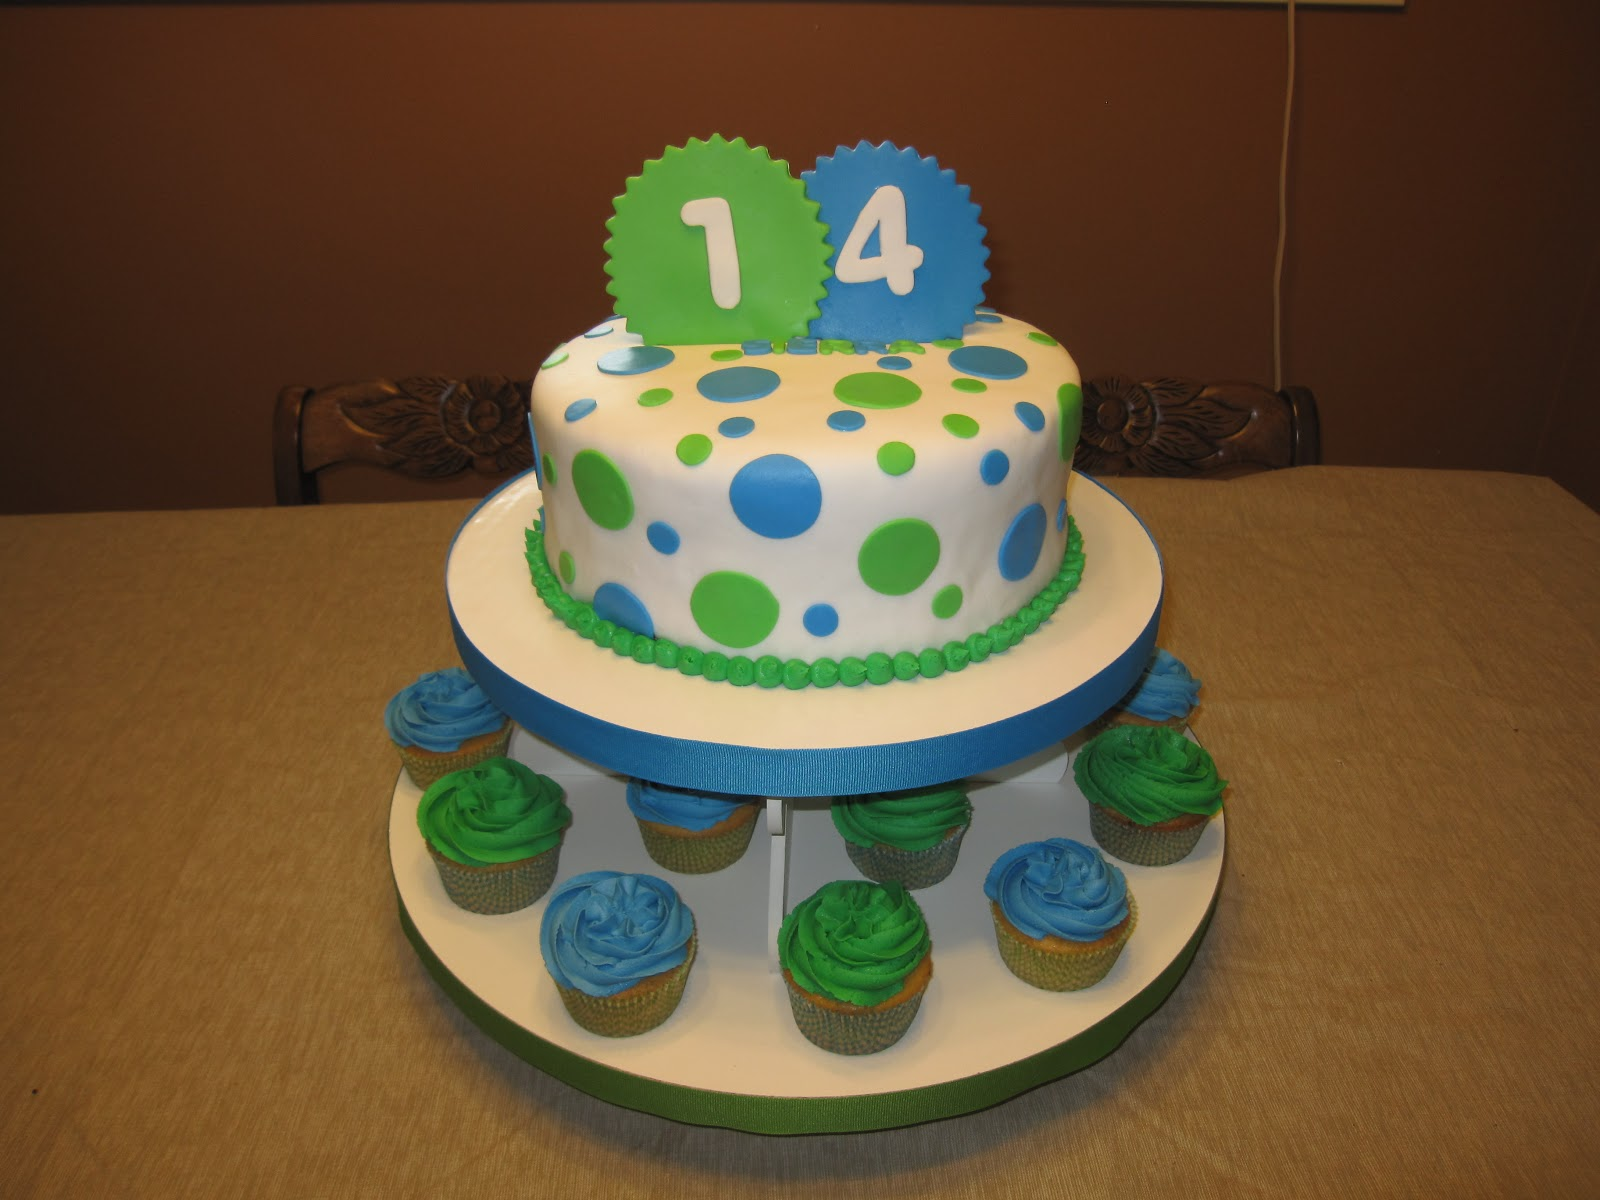 Cake Designs For 14 Year Old Boy : 14 Year Old Birthday Cakes